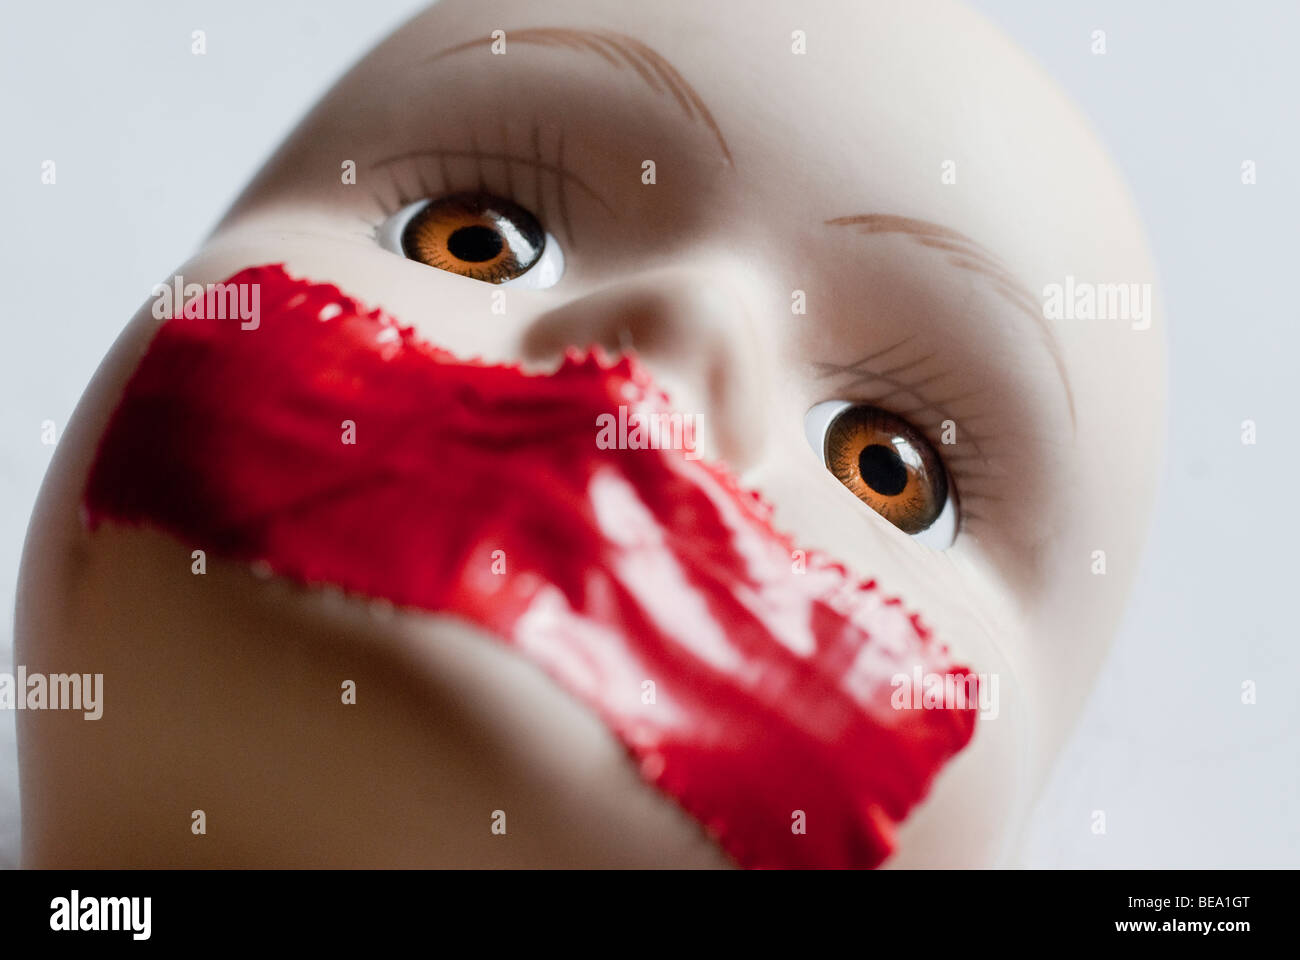 Close up of face of girl doll with red tape on mouth Stock Photo